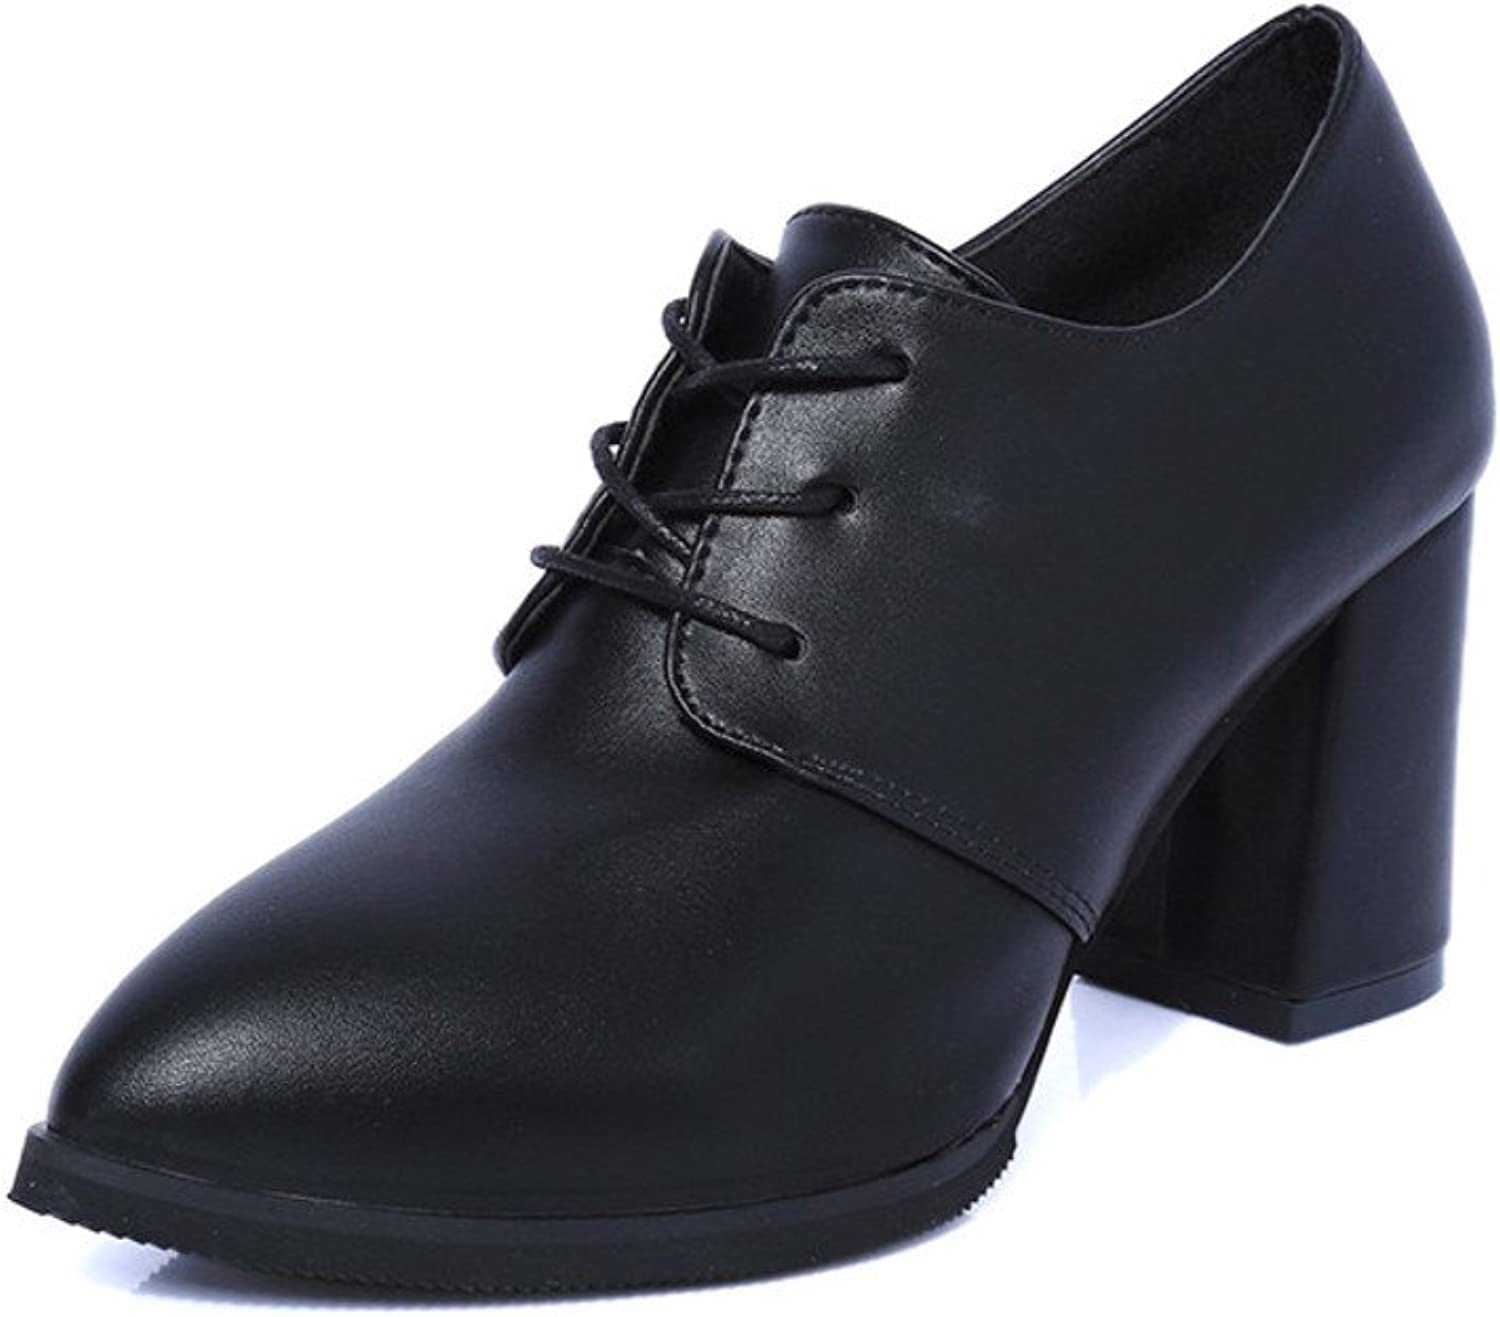 Retro rough high heel shoes of England Girls with pointy shoes Martin business dress shoes elegant small